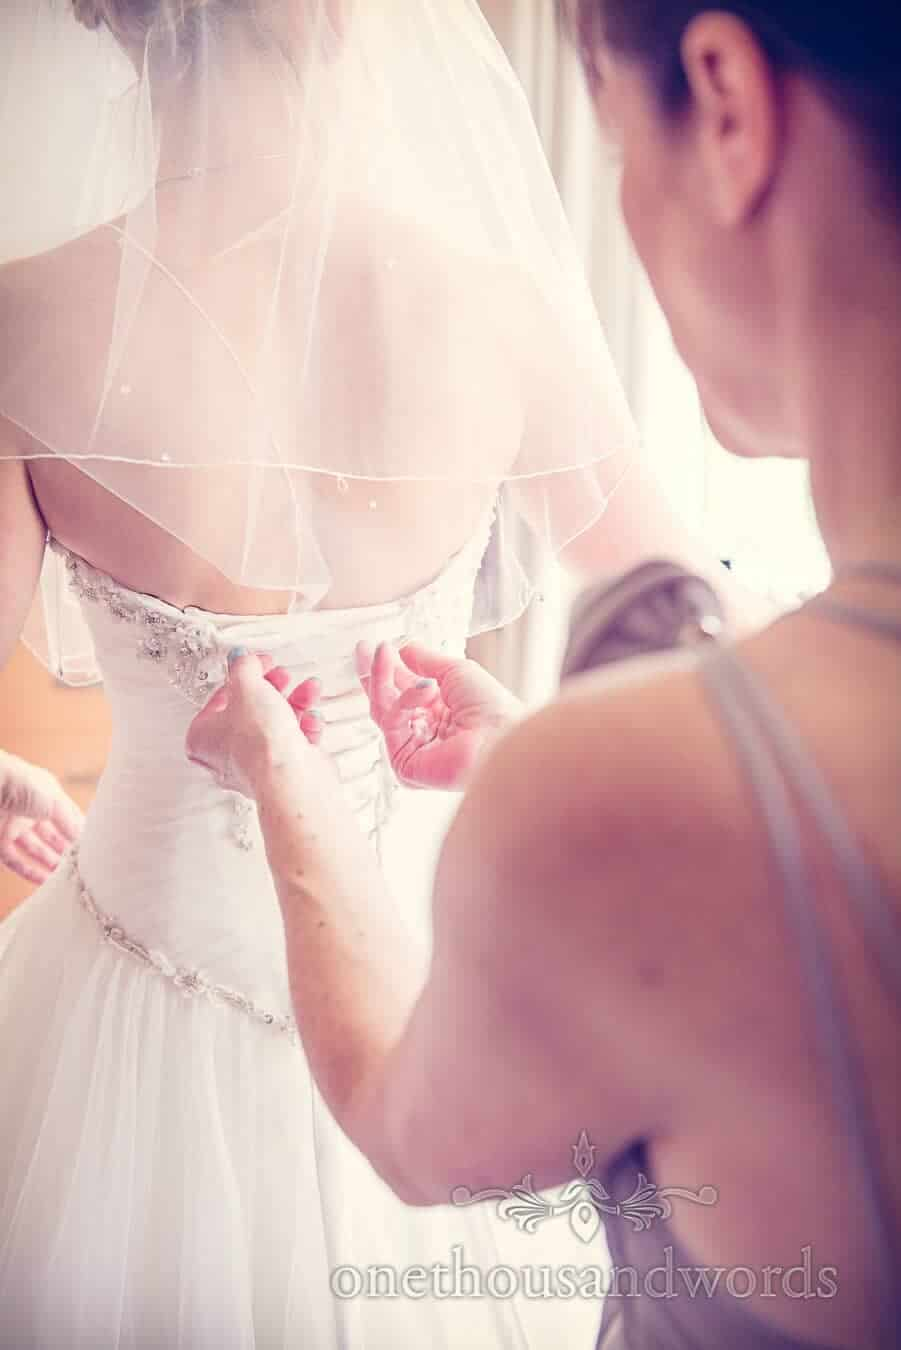 Detail photograph of lacing a wedding dress on wedding morning